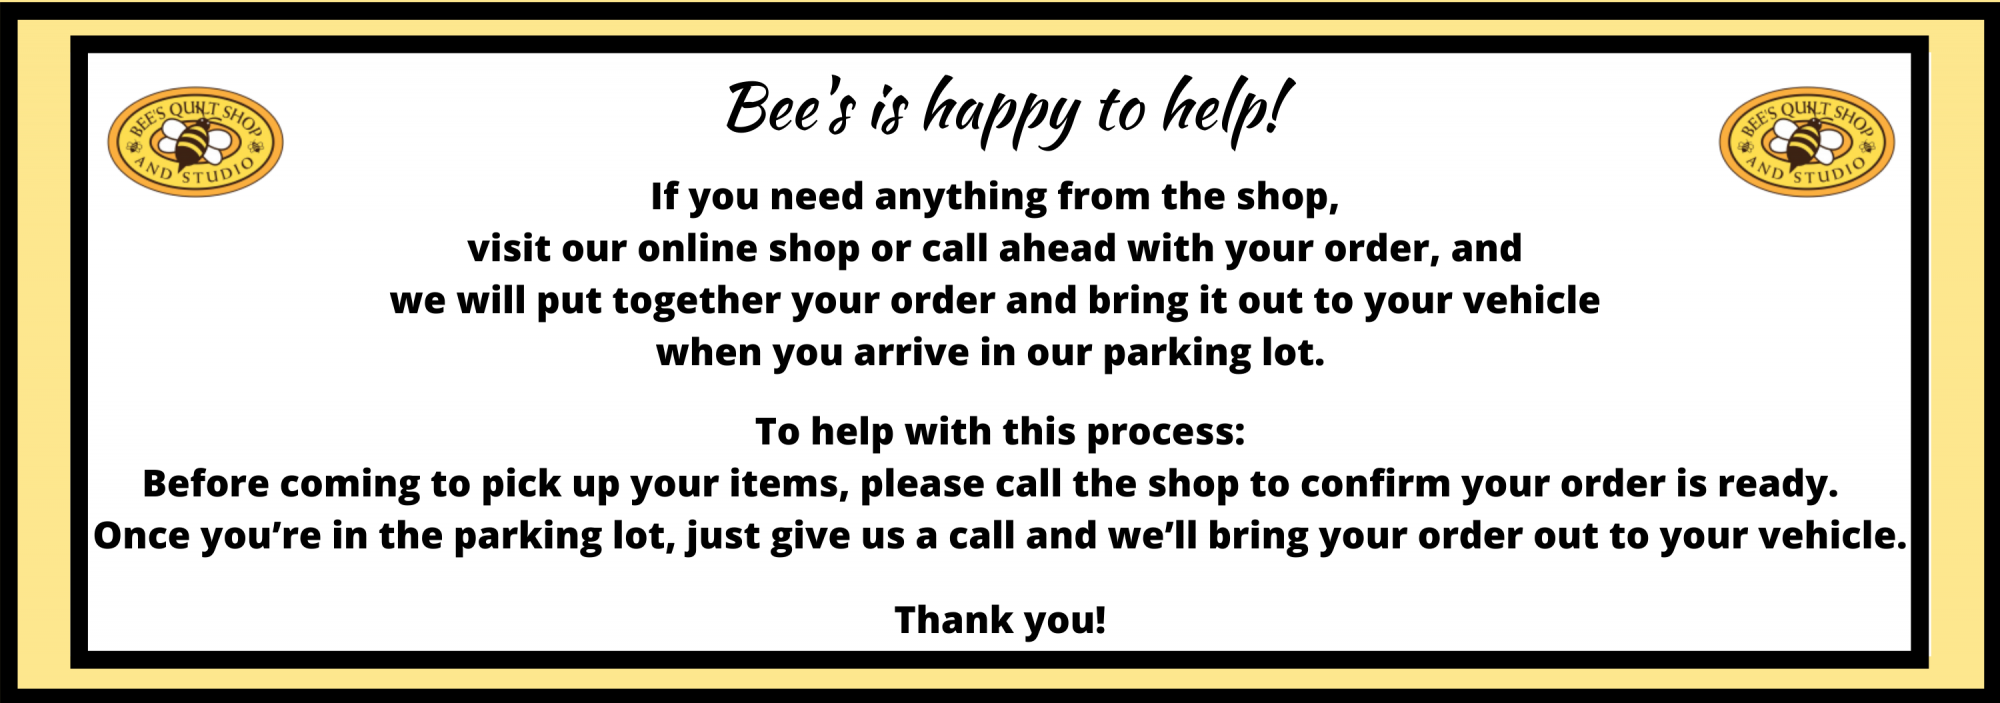 bee's quilt shop st augustine online shop call in order curbside service fabrics machines